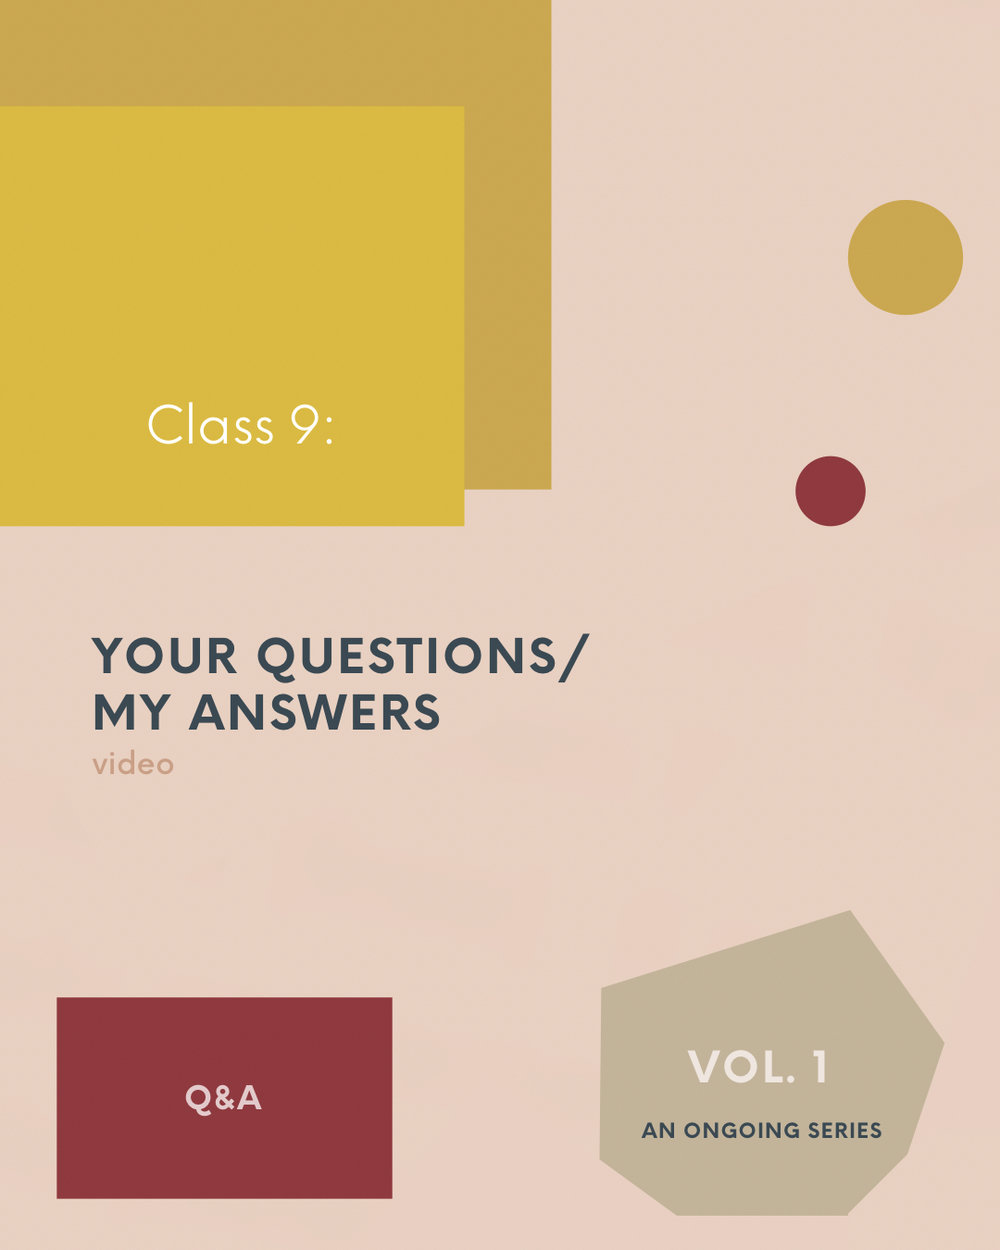 Your Questions | MyAnswers | Vol. 1 - Q&ABy popular demand we're doing a Q&A!Whoop! Whoop!You asked, and it's my honor to oblige. I'm looking forward to answering your questions.$15